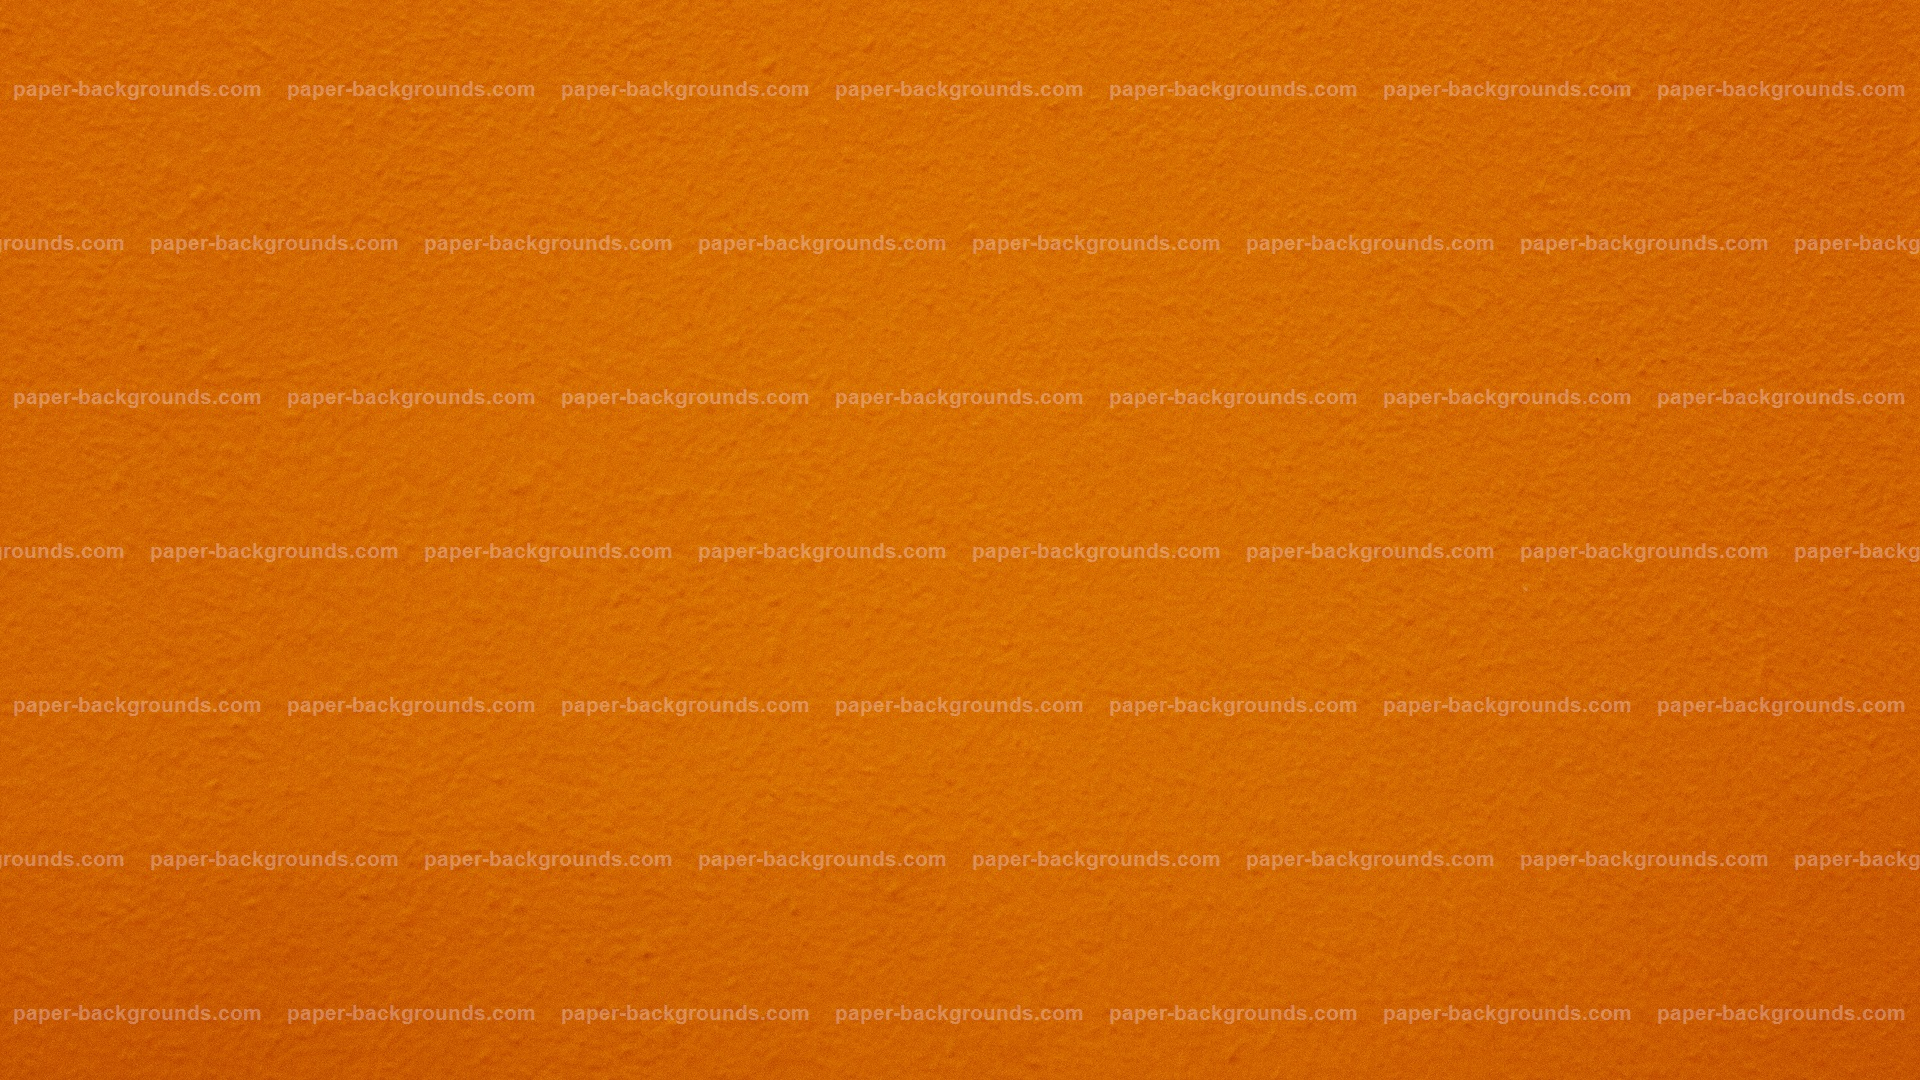 Orange Wall Texture Background HD 1920 1080 1920x1080